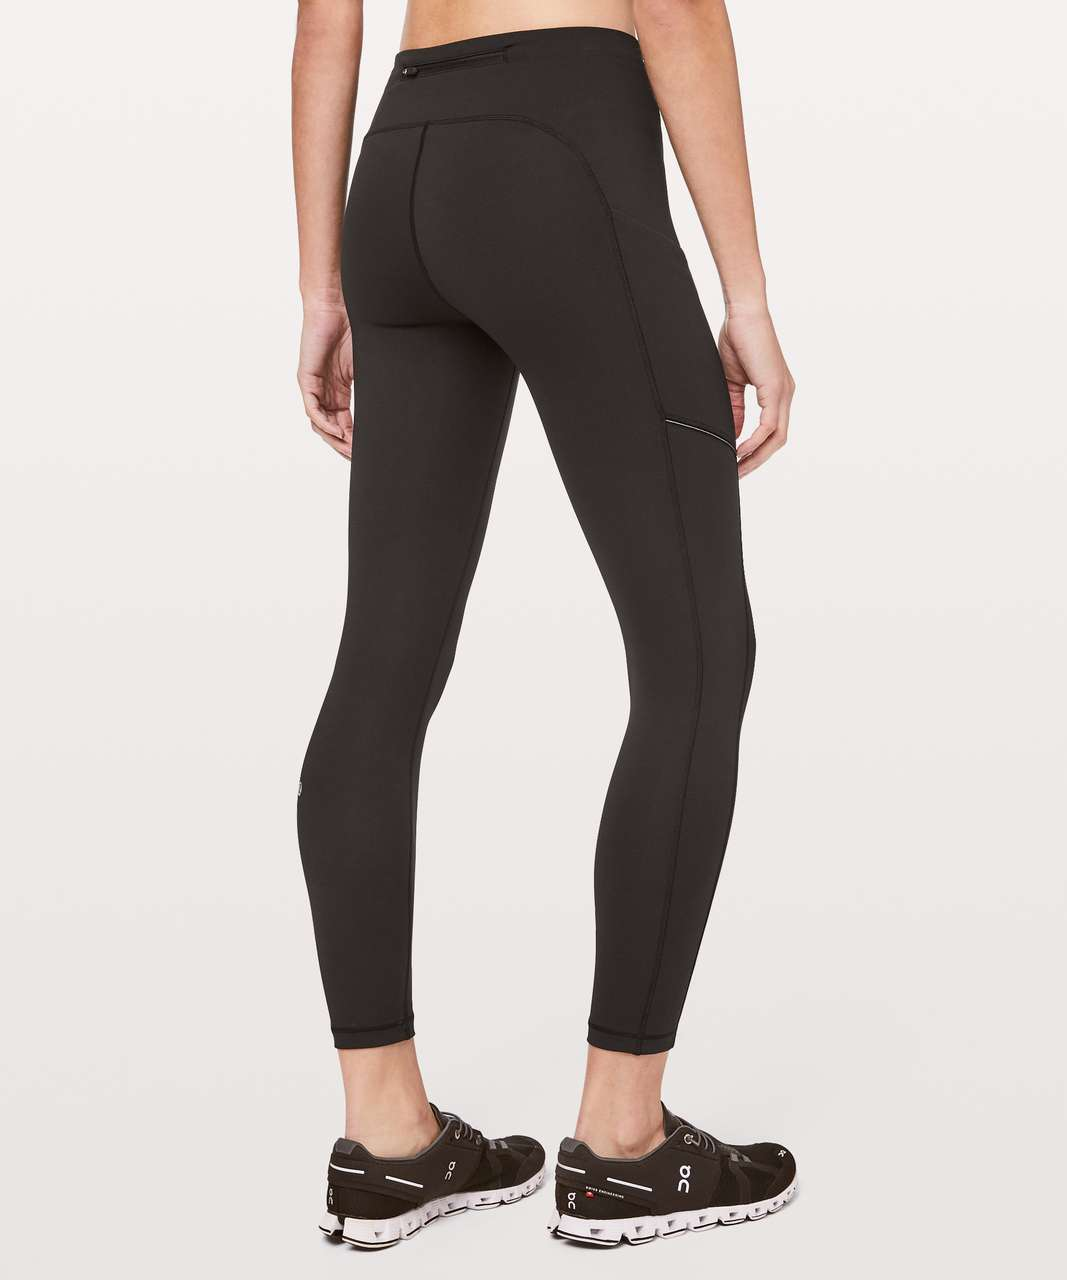 Lululemon Speed Up 7/8 Tight - Black